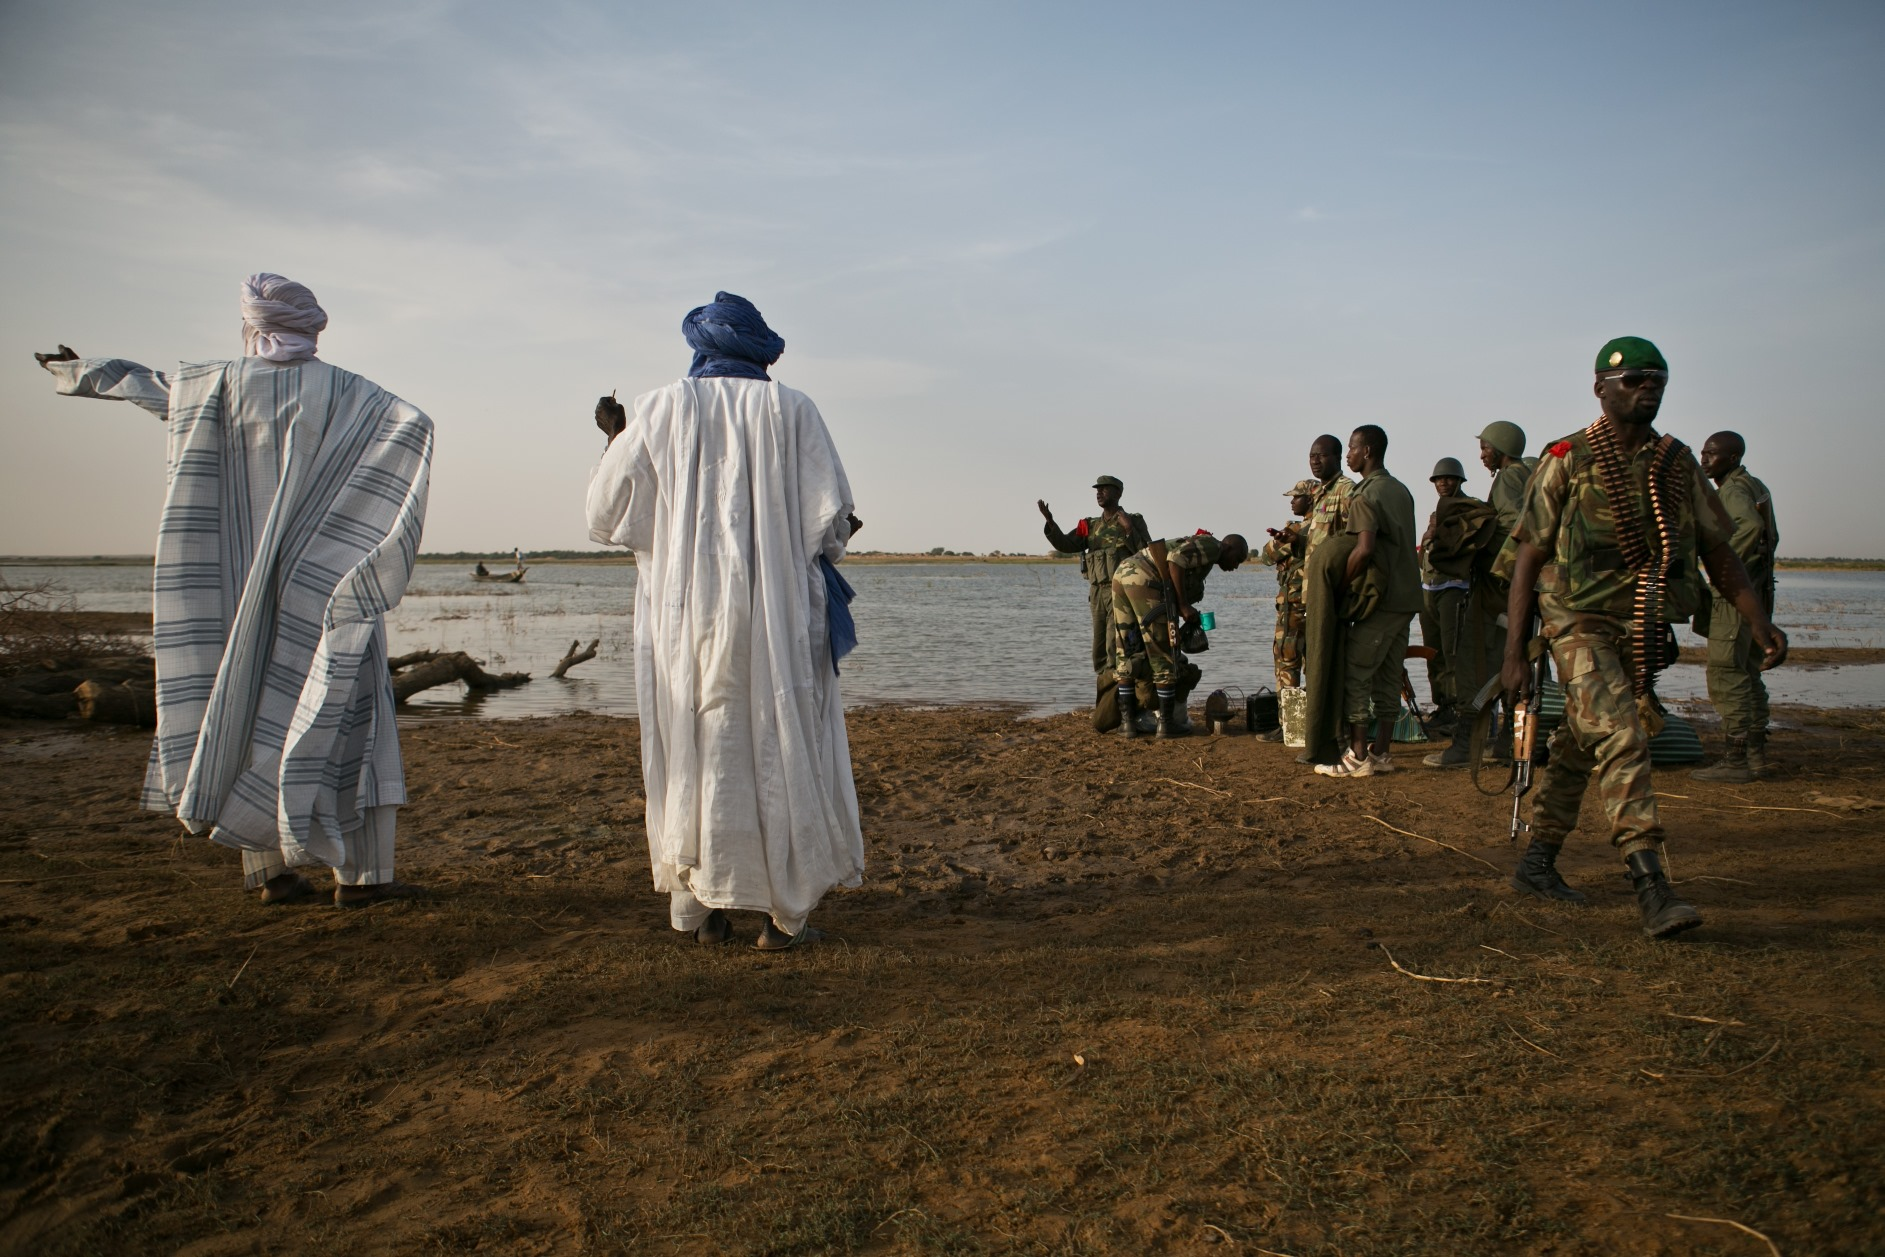 A Malian man points to Kadji, a town surrounding Gao where it is thought that members of MUJAO have been in hiding, in Kadji, Mali, 1 March 2013.